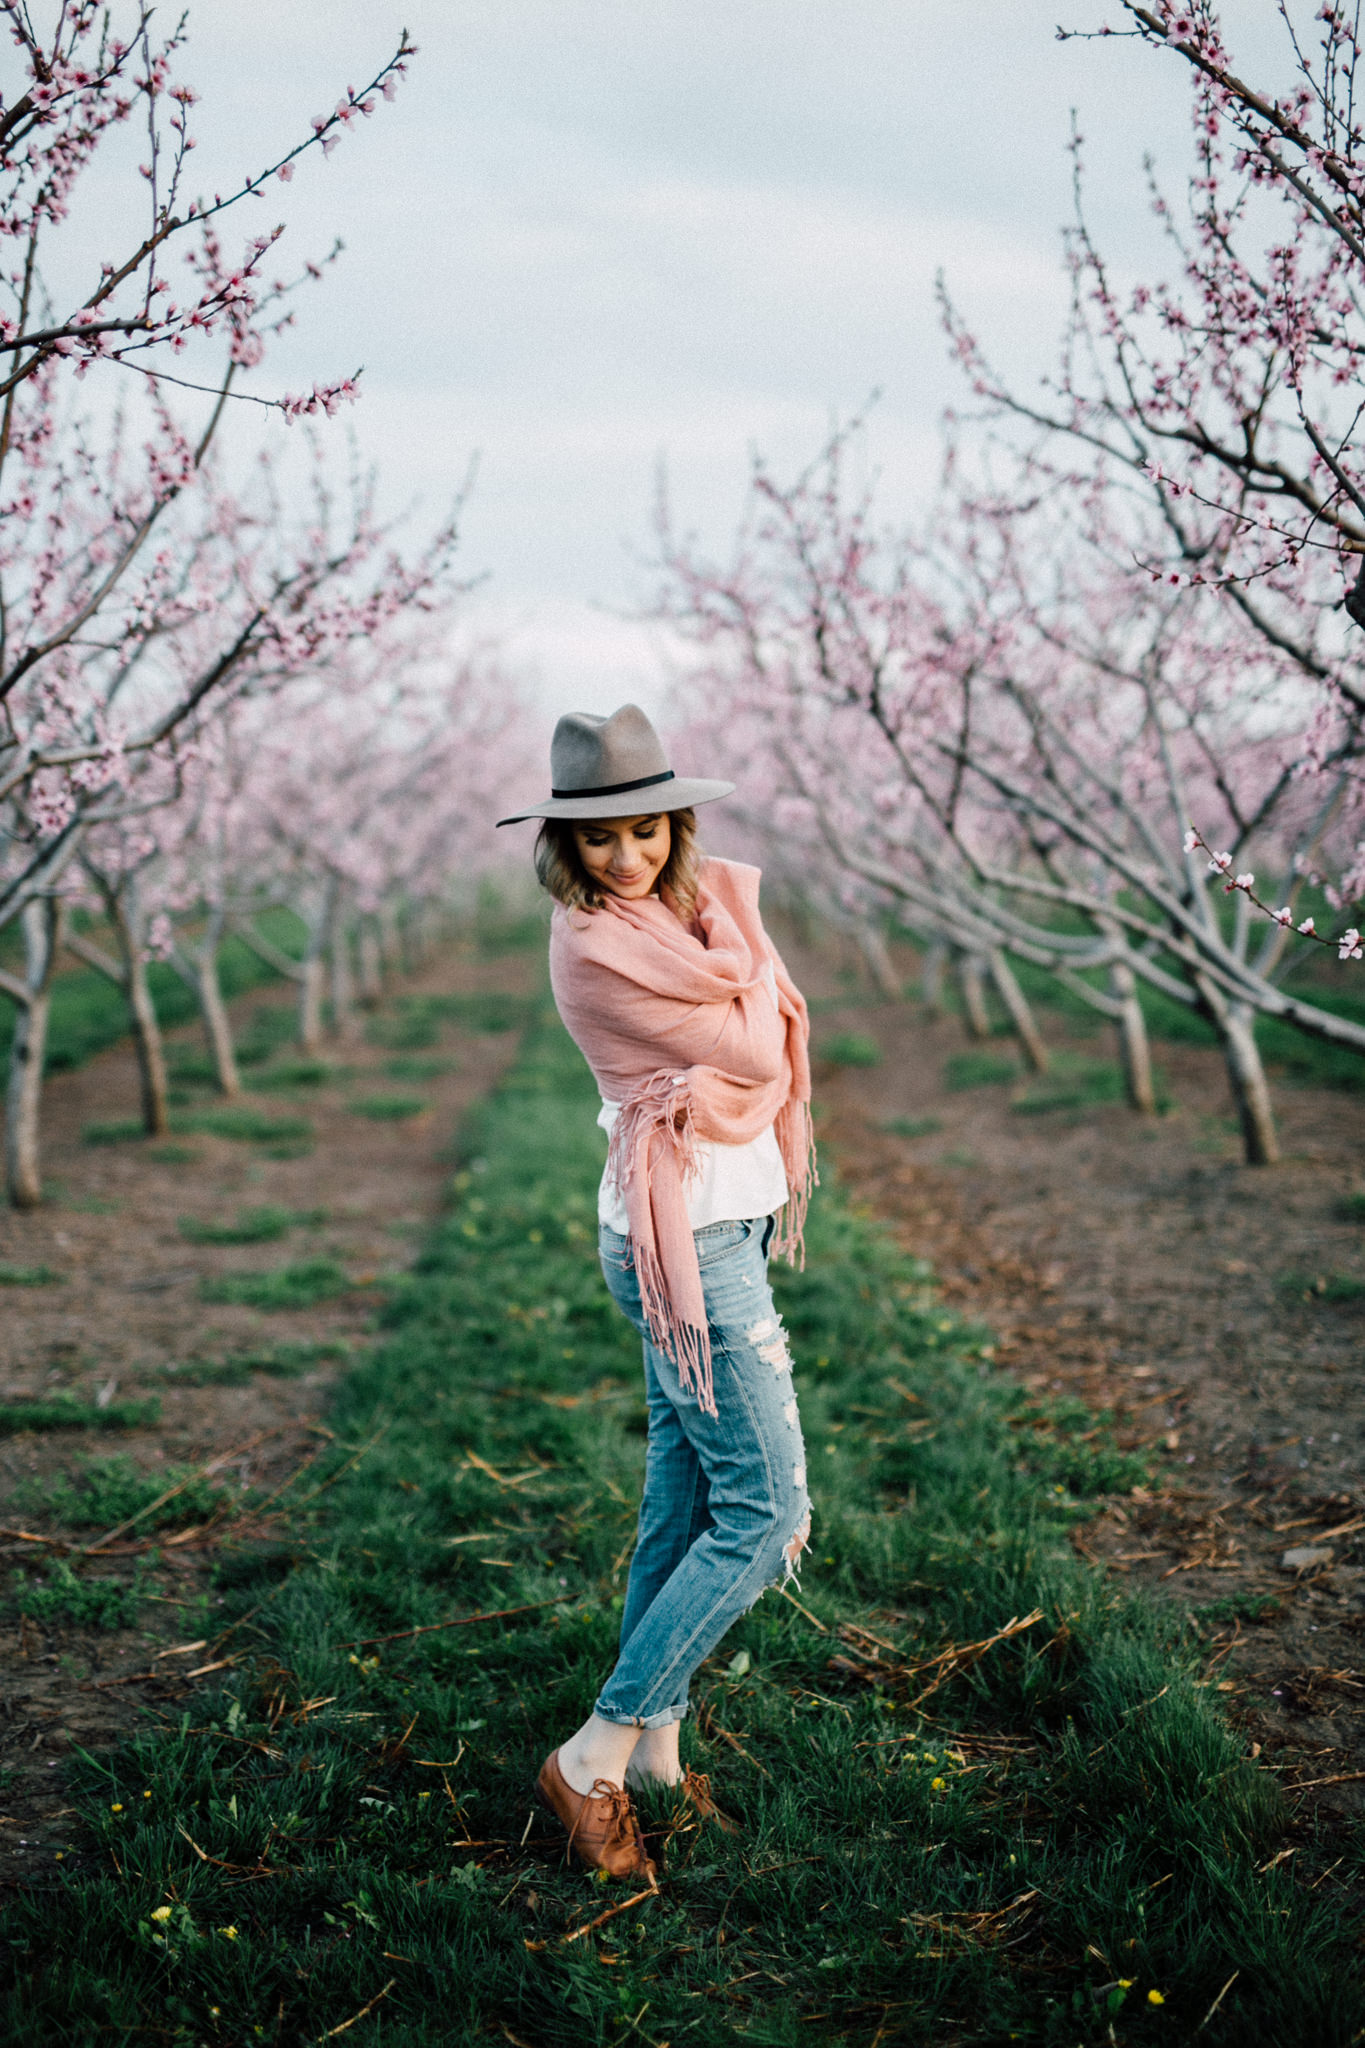 Niagara-Portrait-Session-Niagara-On-The-Lake-Cherry-Blossoms-photography-by-Simply-Lace-Photography-060.JPG